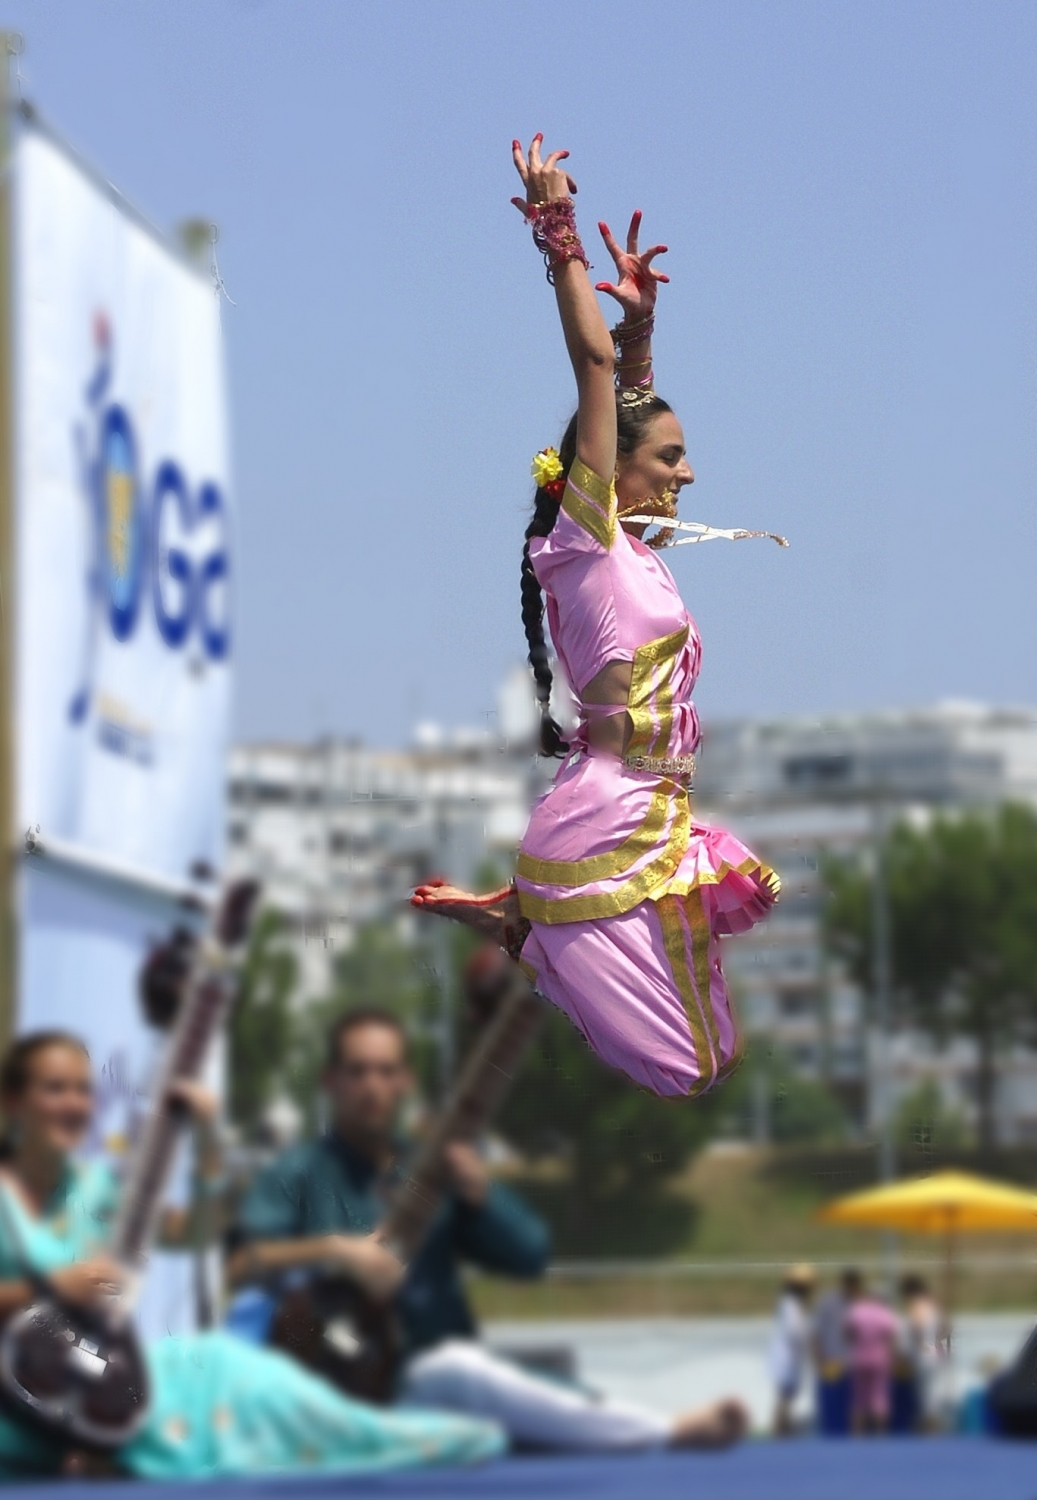 Presentation of Bháratanathyam by Shiva Rája - International Day of Yoga 2010, Almada